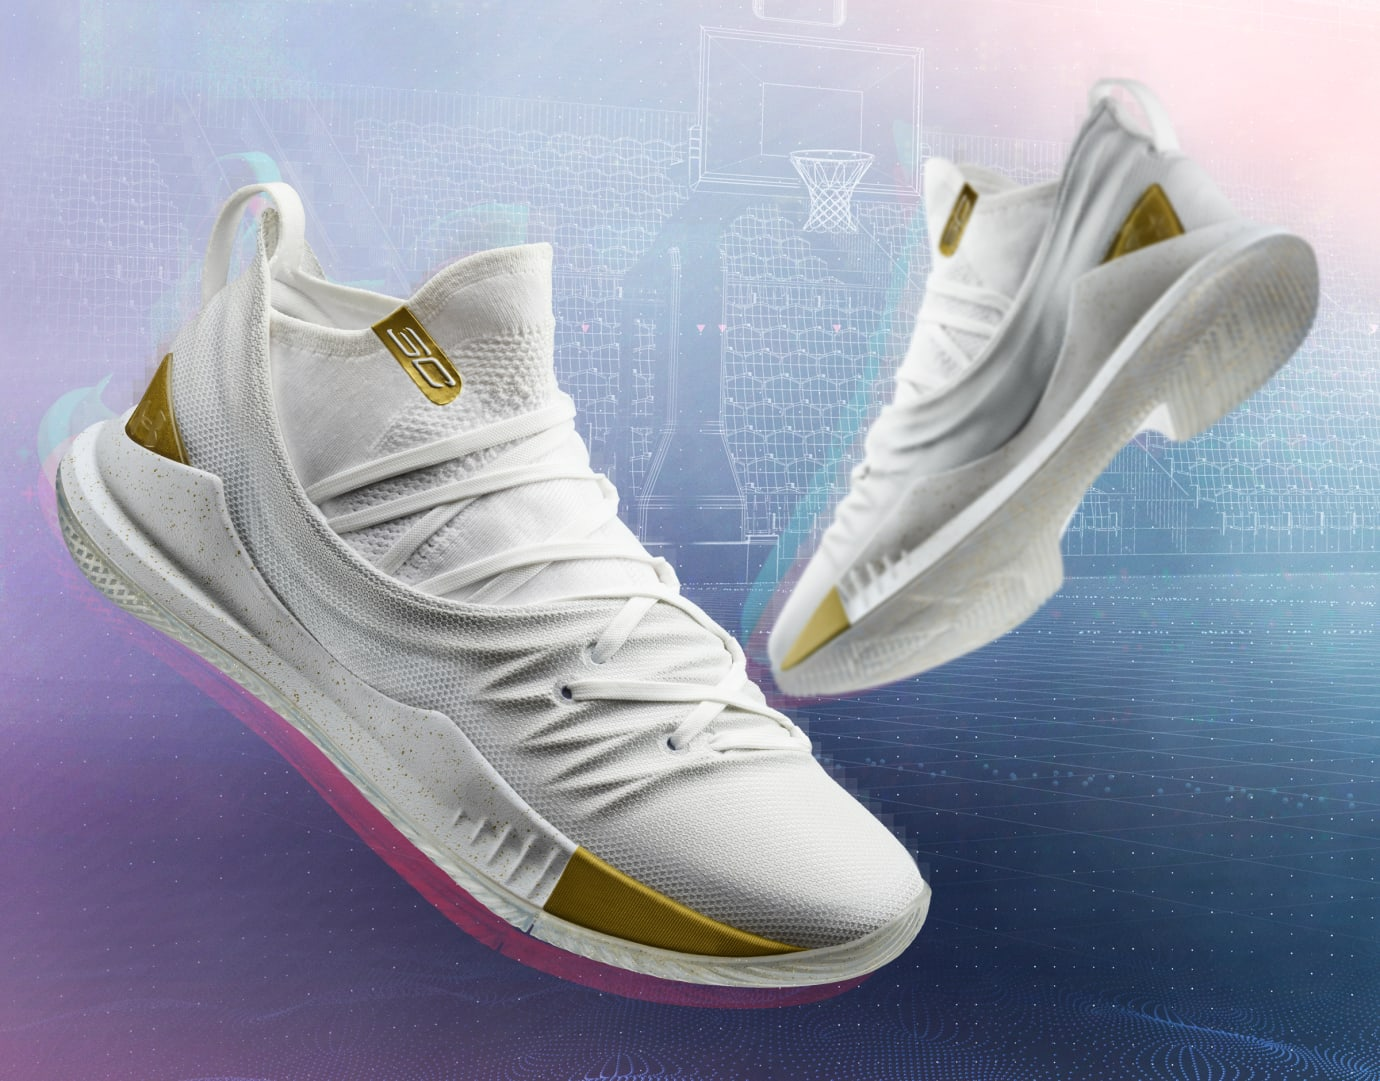 Under Armour Curry 5 'Takeover Edition 2' White (Pair)